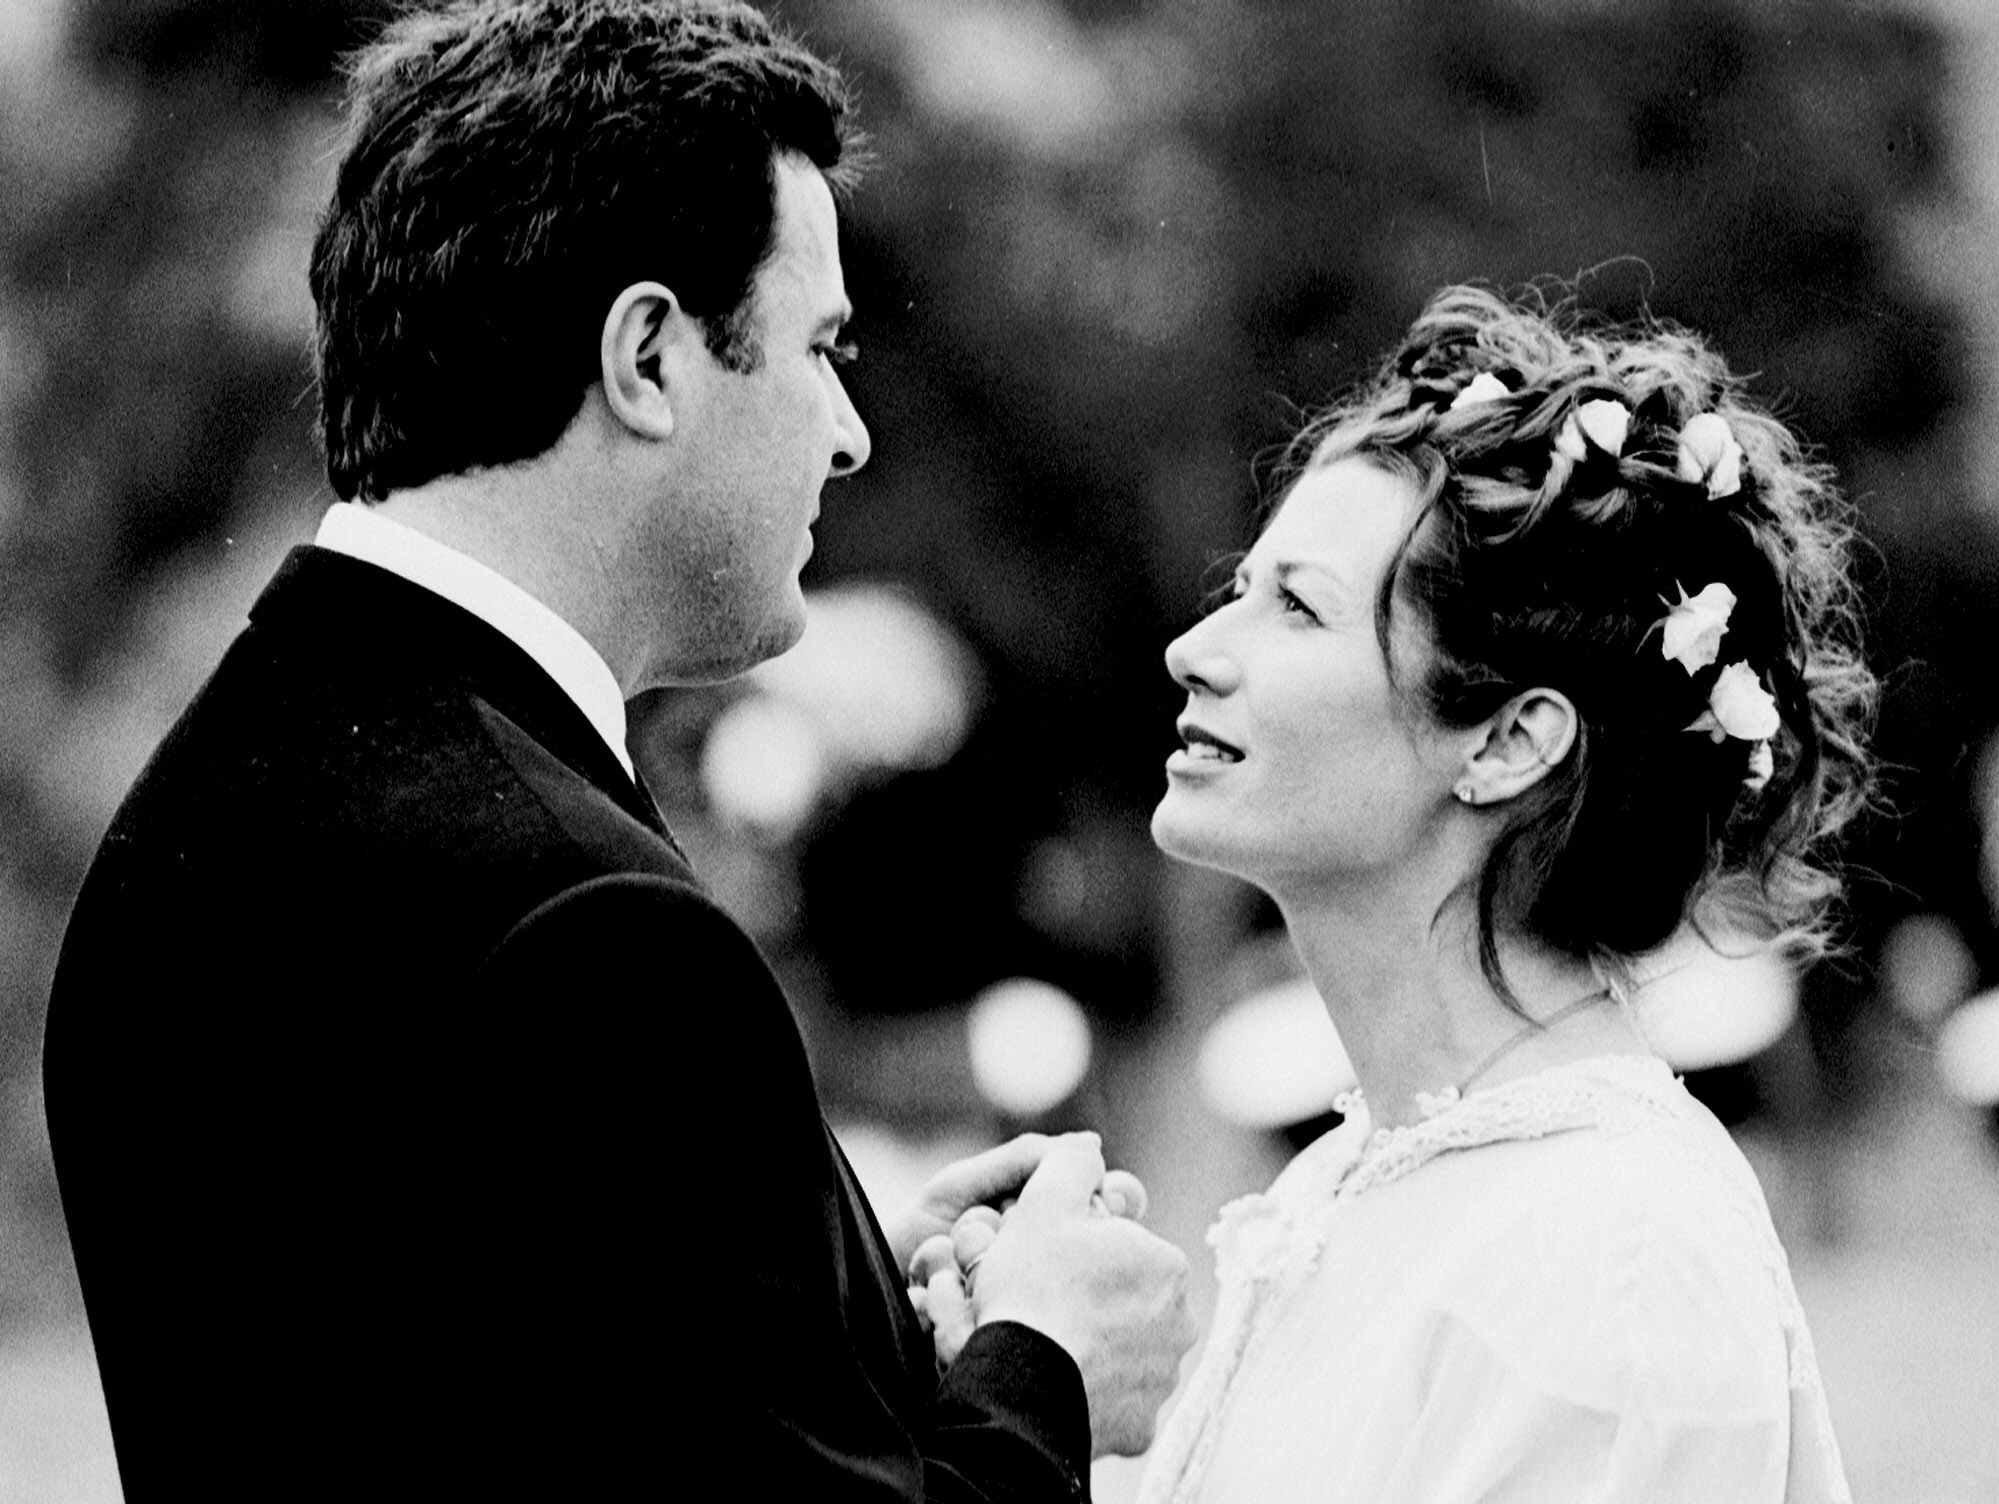 Vince Gill and Amy Grant are seen at their wedding on Friday, March 10, 2000, in Nashville, Tennessee. The couple, he one of the biggest stars in country music and she the most famous singer to come out of Christian music, were married in Williamson County south of Nashville.